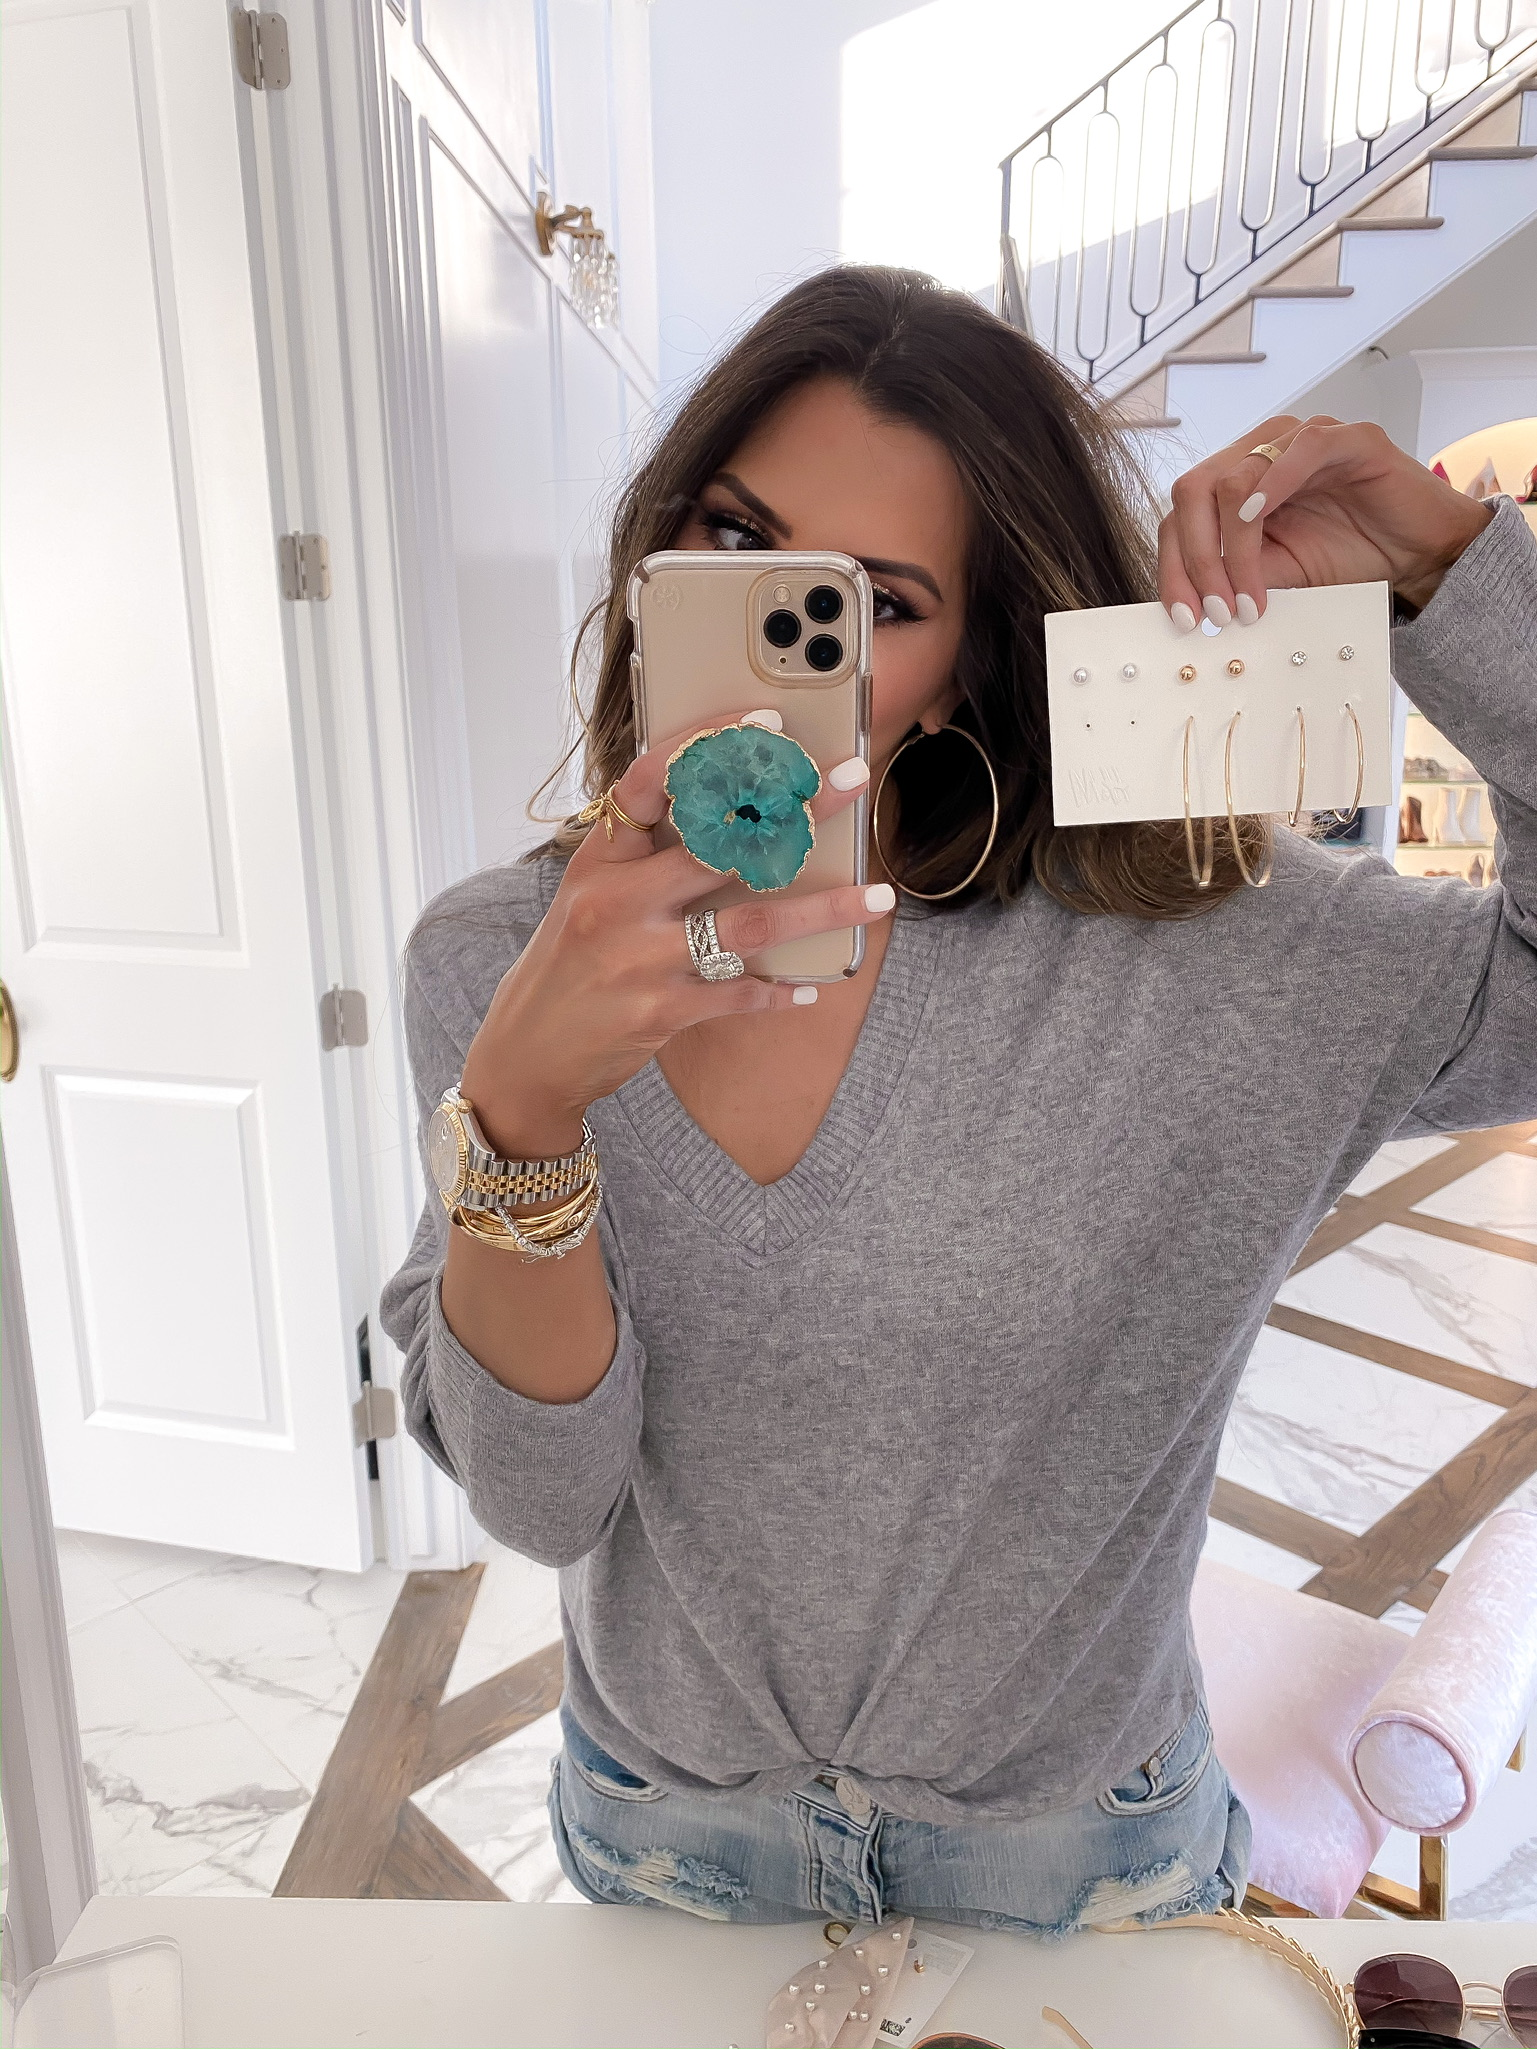 Blogging Newsletter by popular US life and style blog, The Sweetest Thing: image of a woman holding some H&M 6-pack Earrings and Studs.